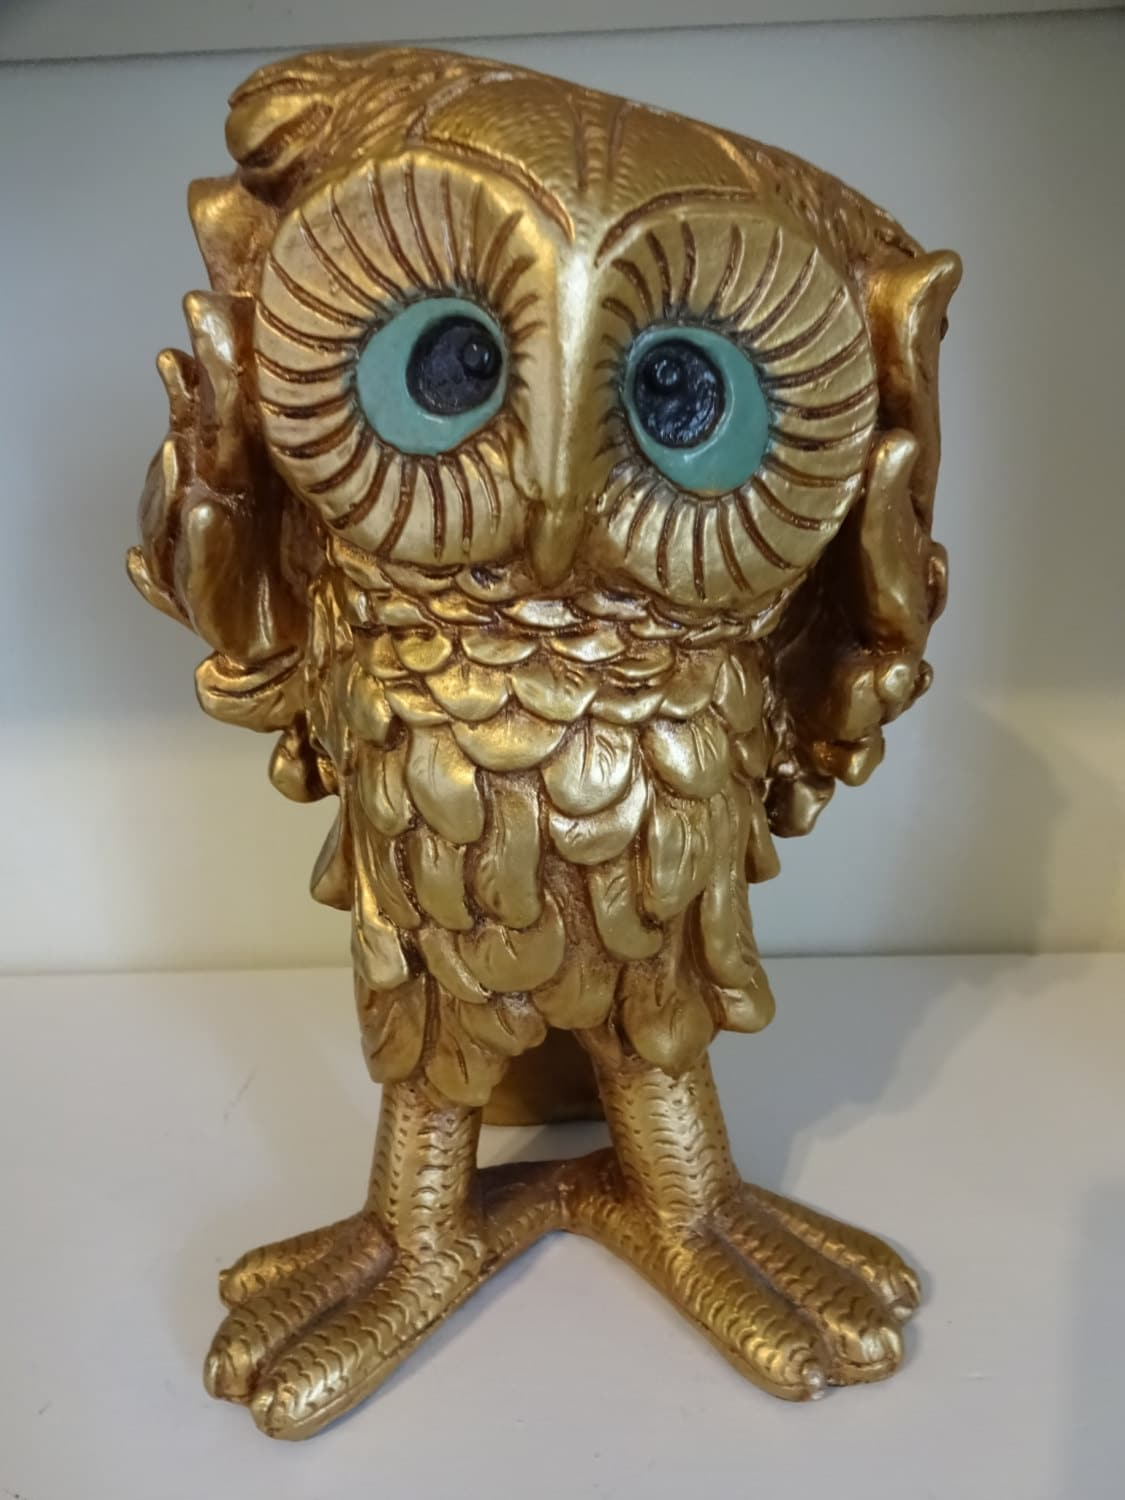 Retro owl hear no evil painted gold statue very by quirkypigeon - Hear no evil owls ceramic ...